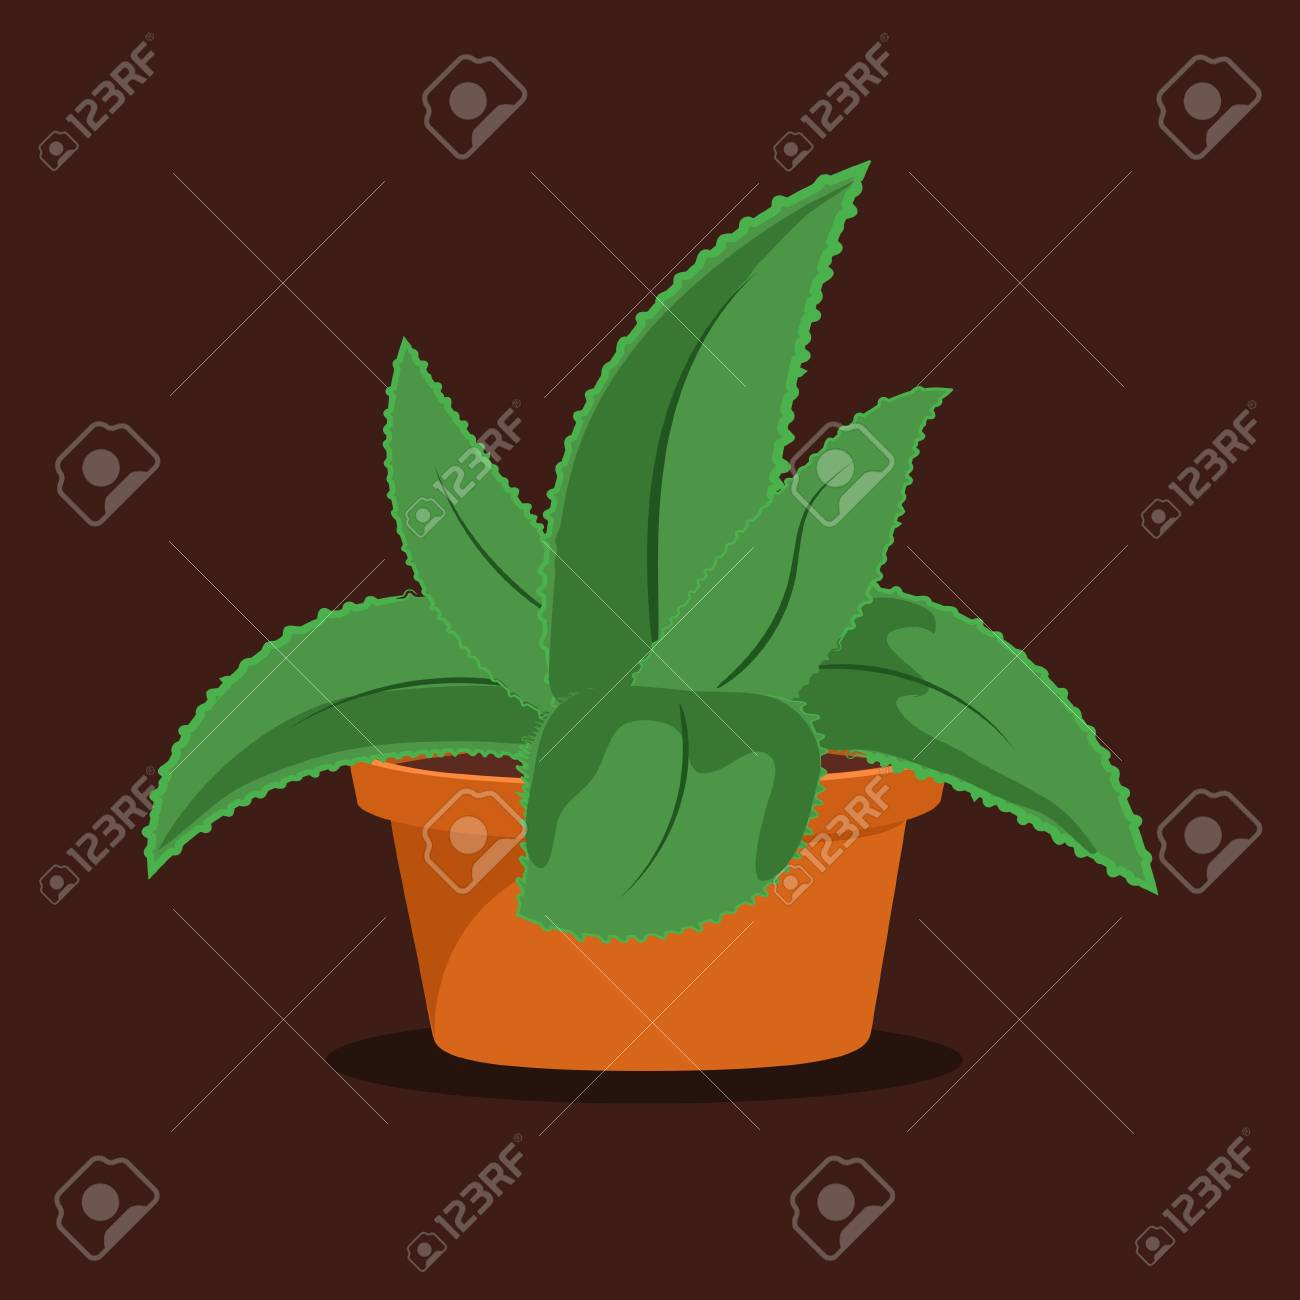 Aloe Vera Plant In Pot On Brown Background Succulent Plant Royalty Free Cliparts Vectors And Stock Illustration Image 100151012